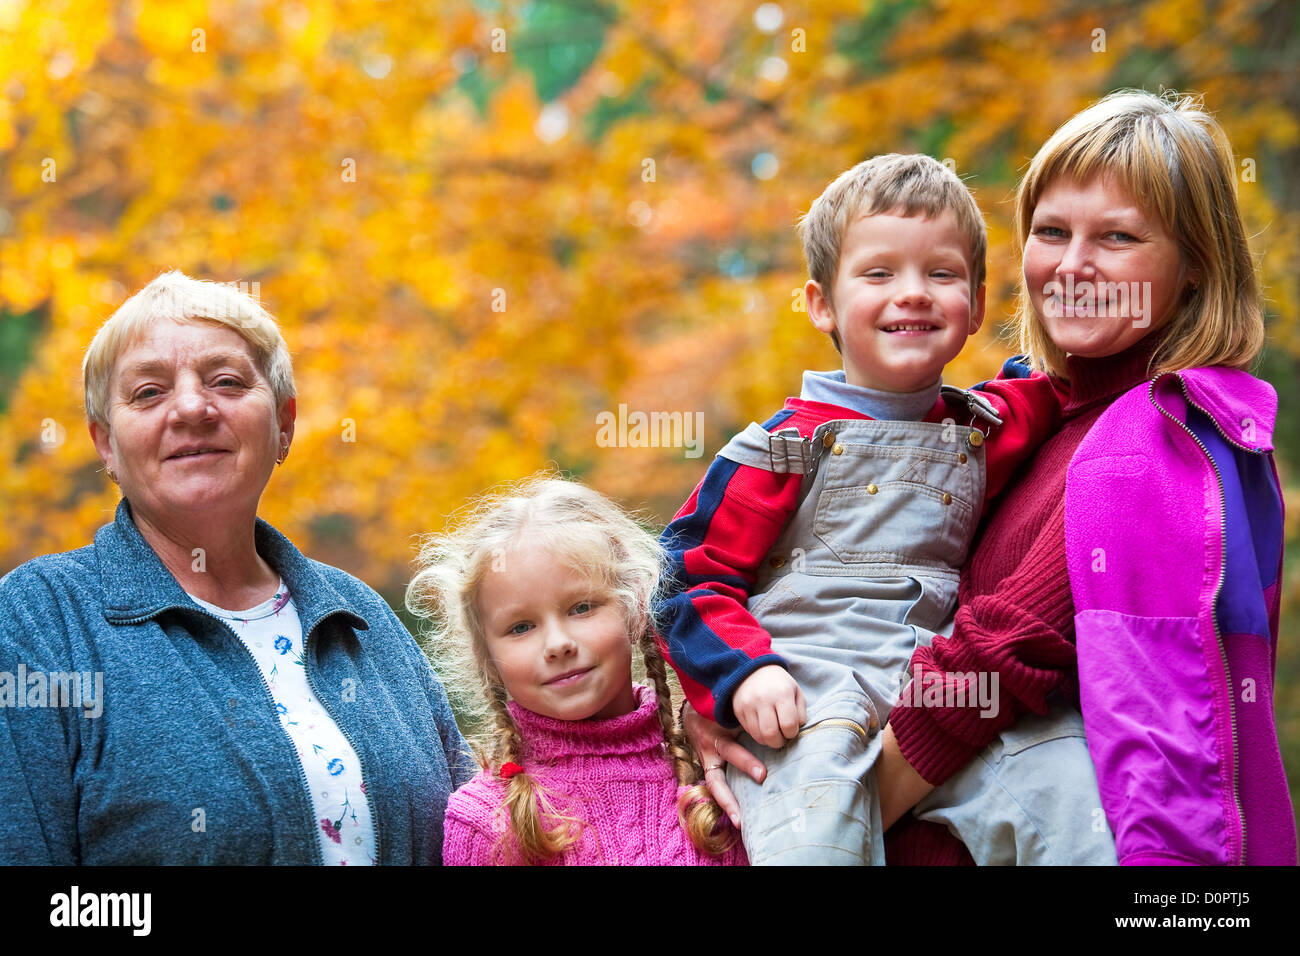 Happy family autumn outdoor portrait - Stock Image